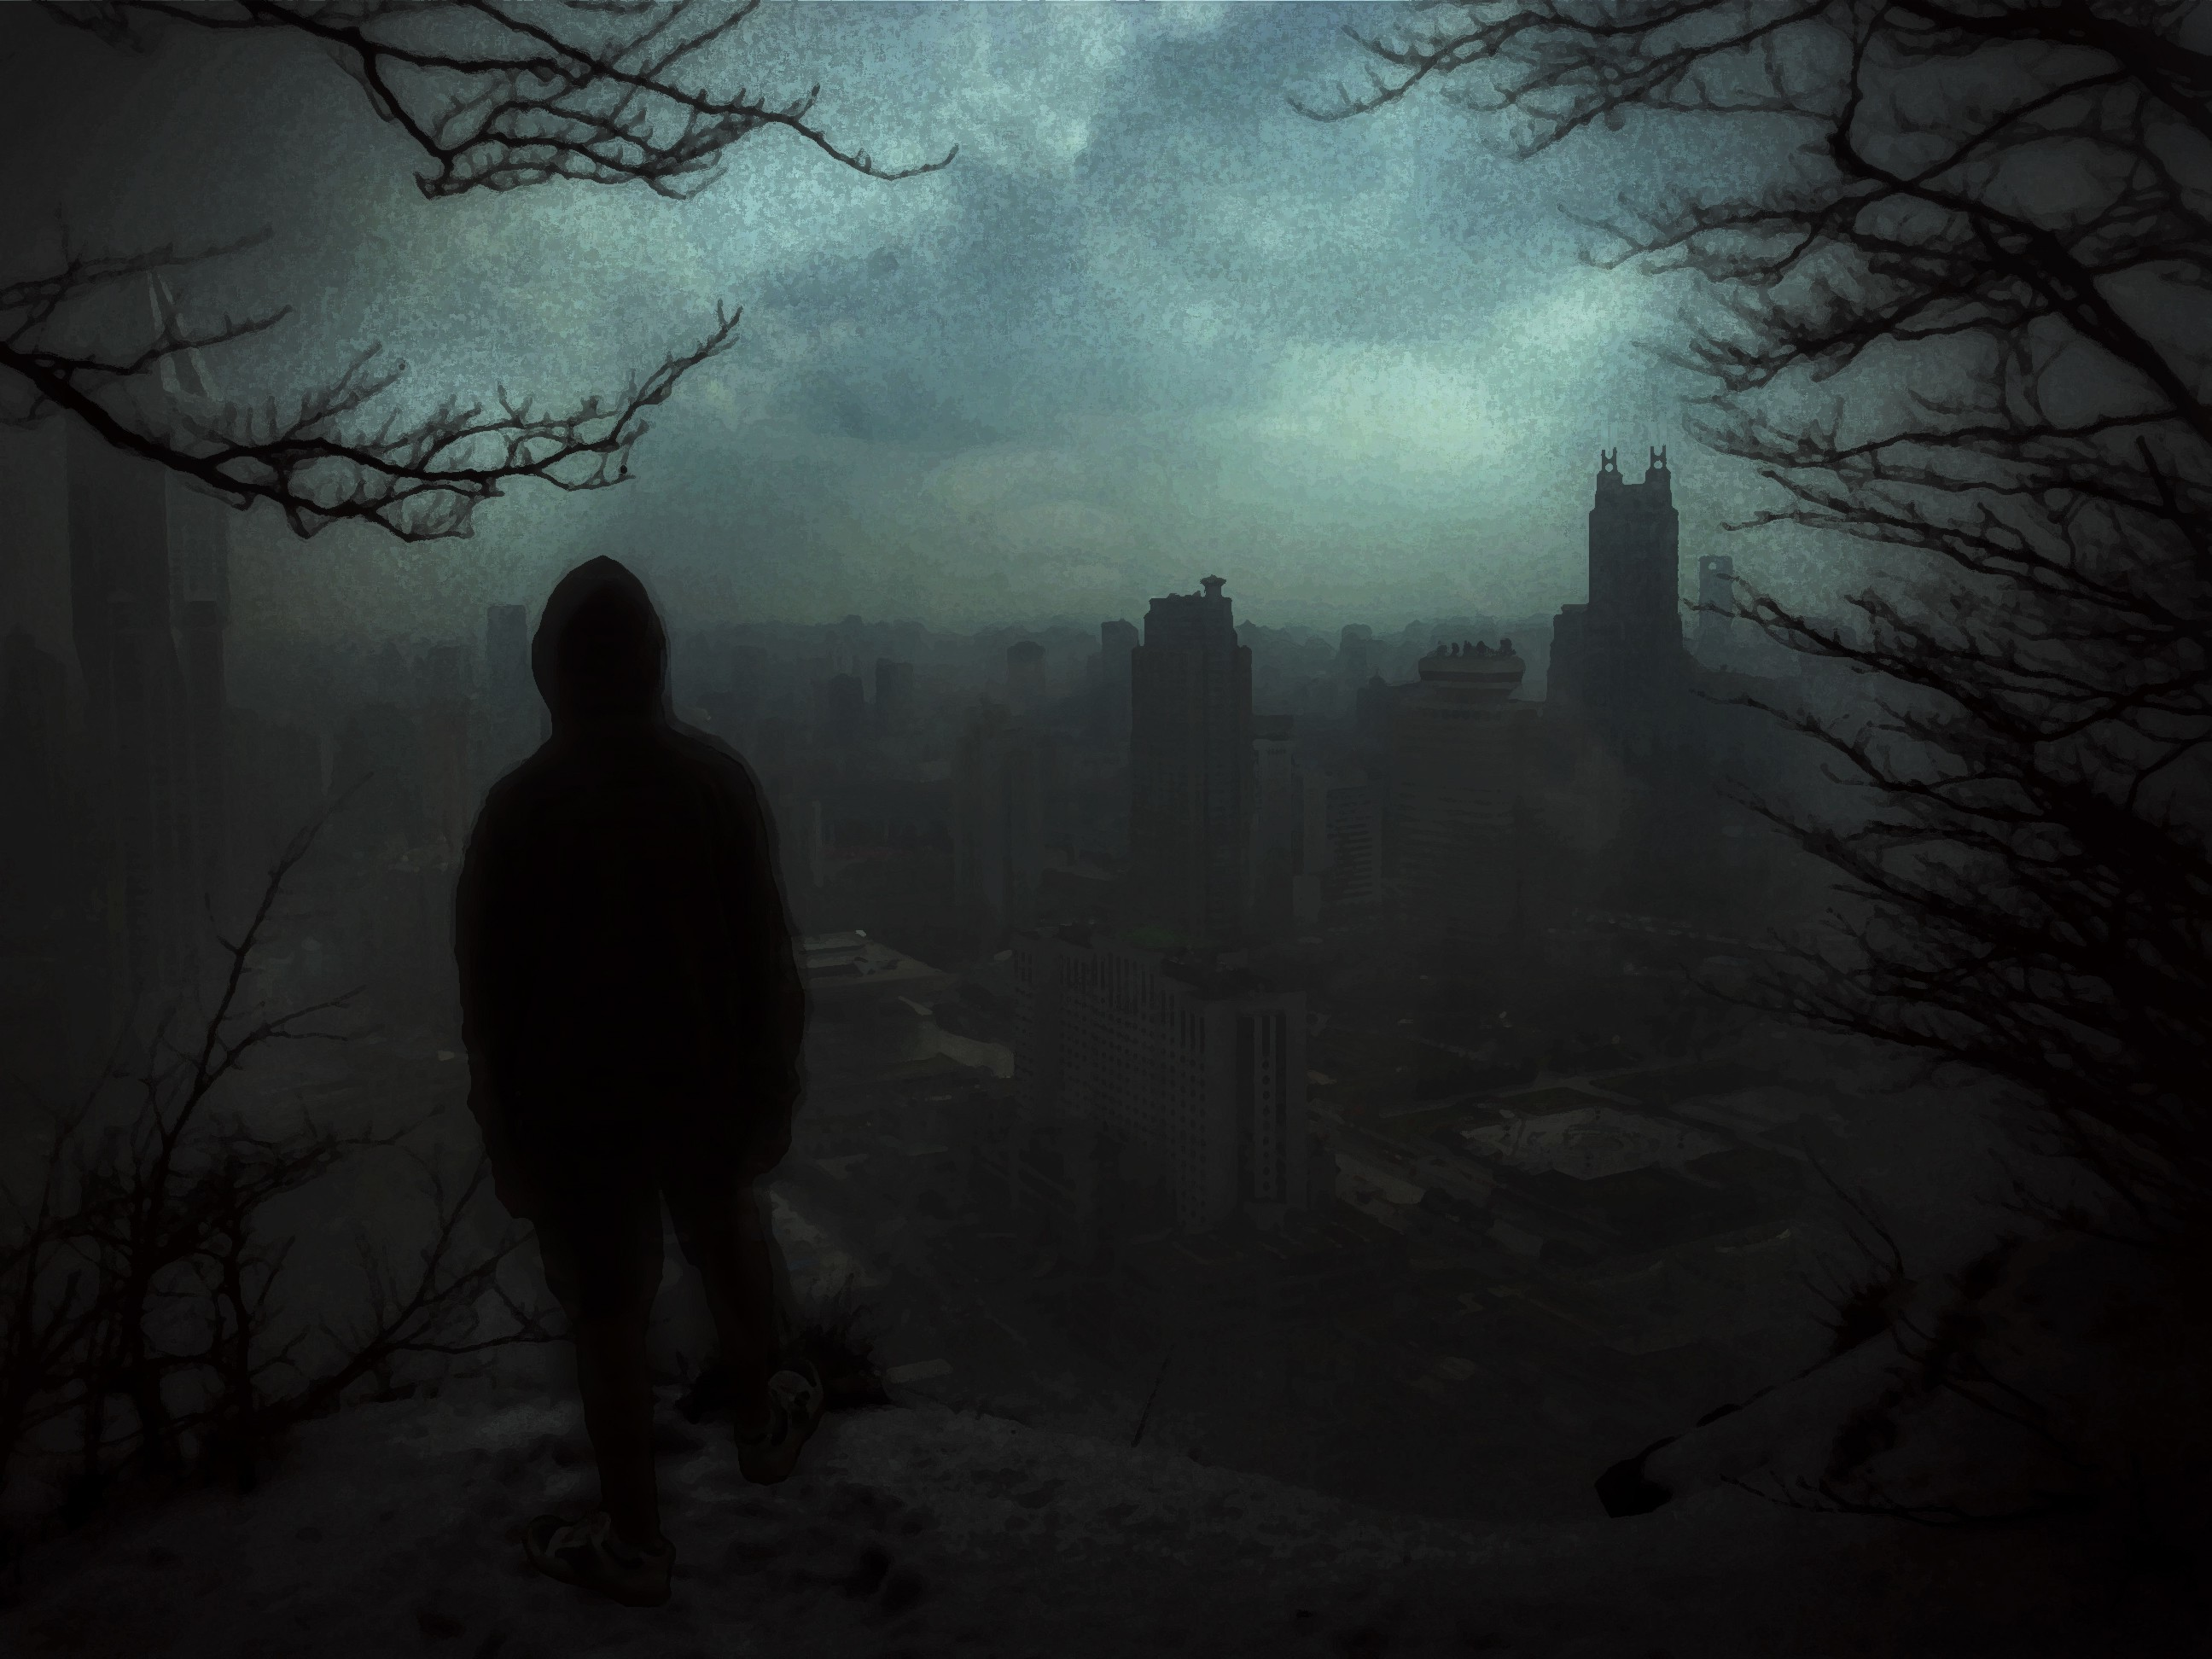 Sadness Wallpaper With Quotes Shanghai Rear View Dark Alone Trees Forest Nightmare